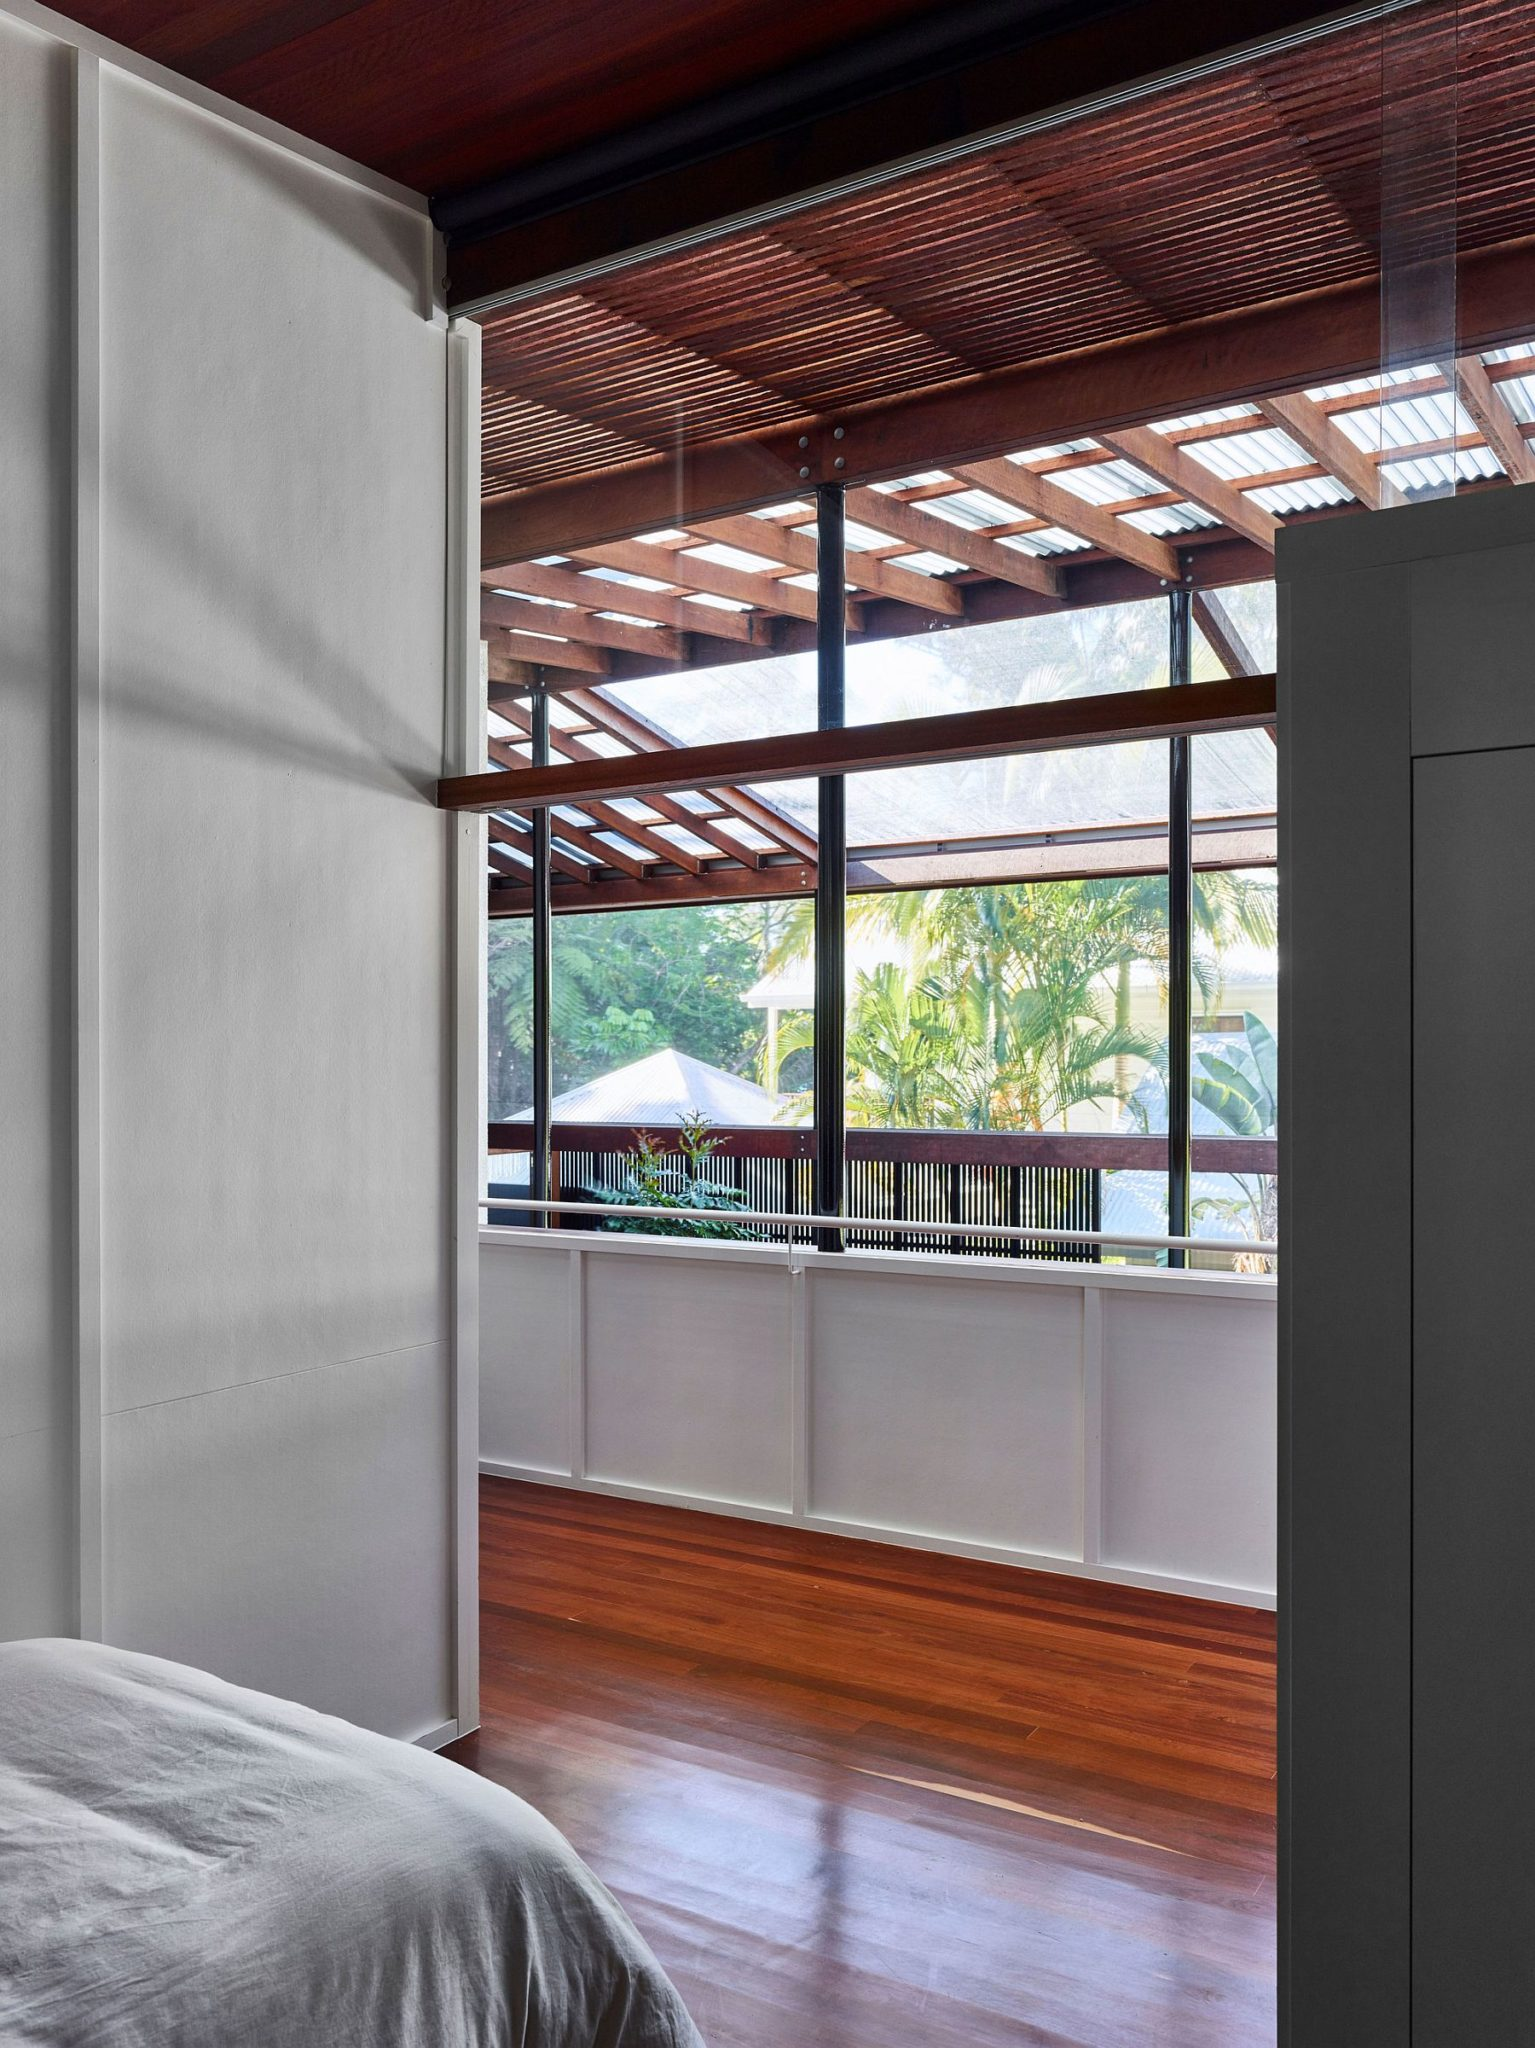 screened veranda walled by a rainforest serves as a serene holiday